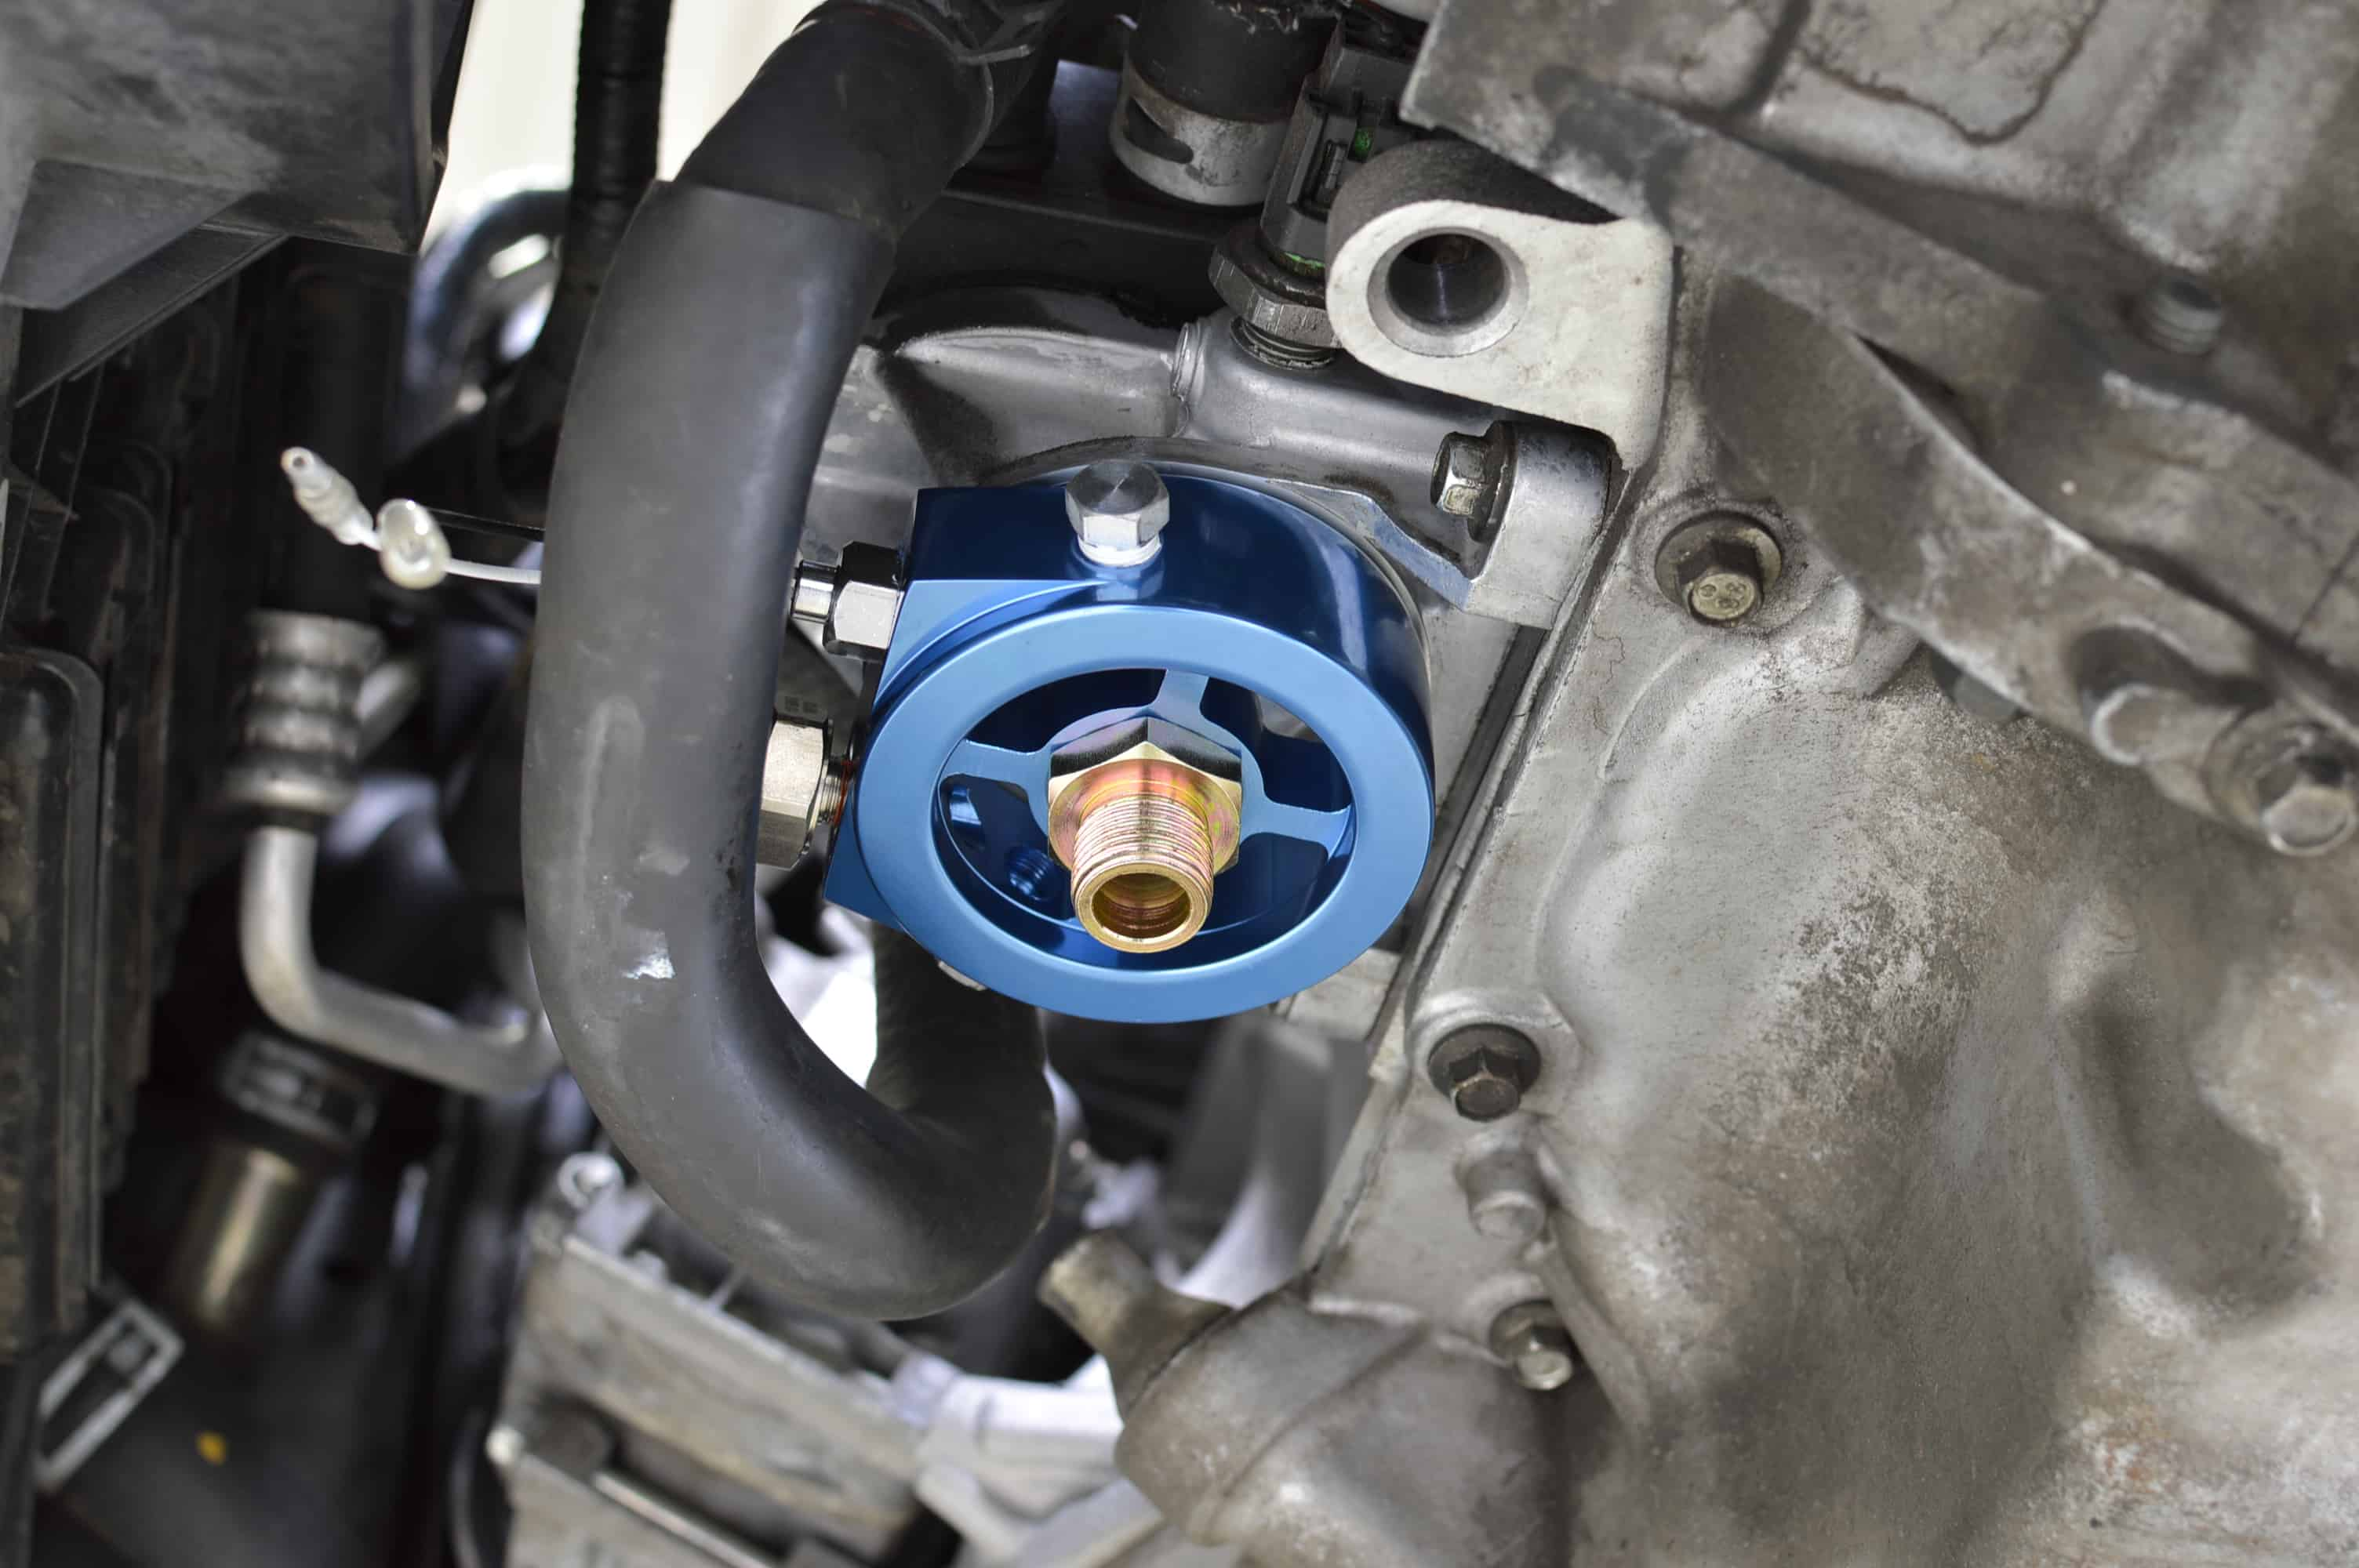 Mazdaspeed Oil FIlter Housing for first generation Mazdaspeed3 and Mazdaspeed6